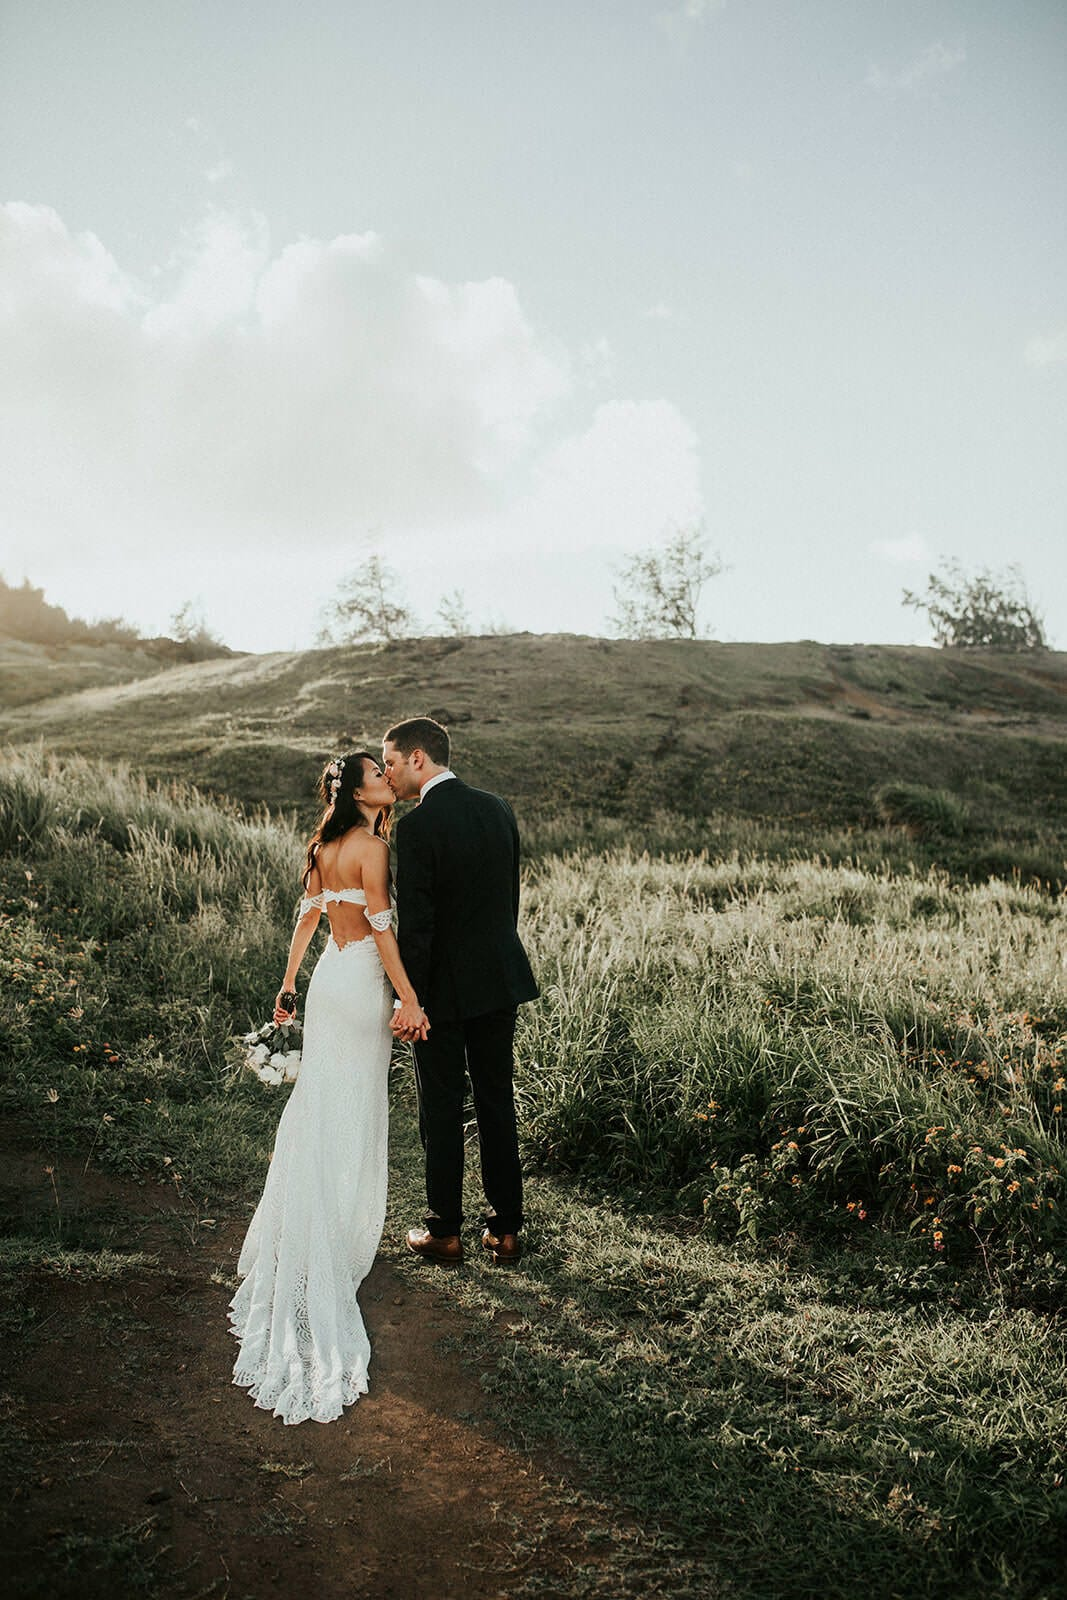 Brunette bride wearing Grace Loves Lace Paloma Gown kissing groom on green grassy hill